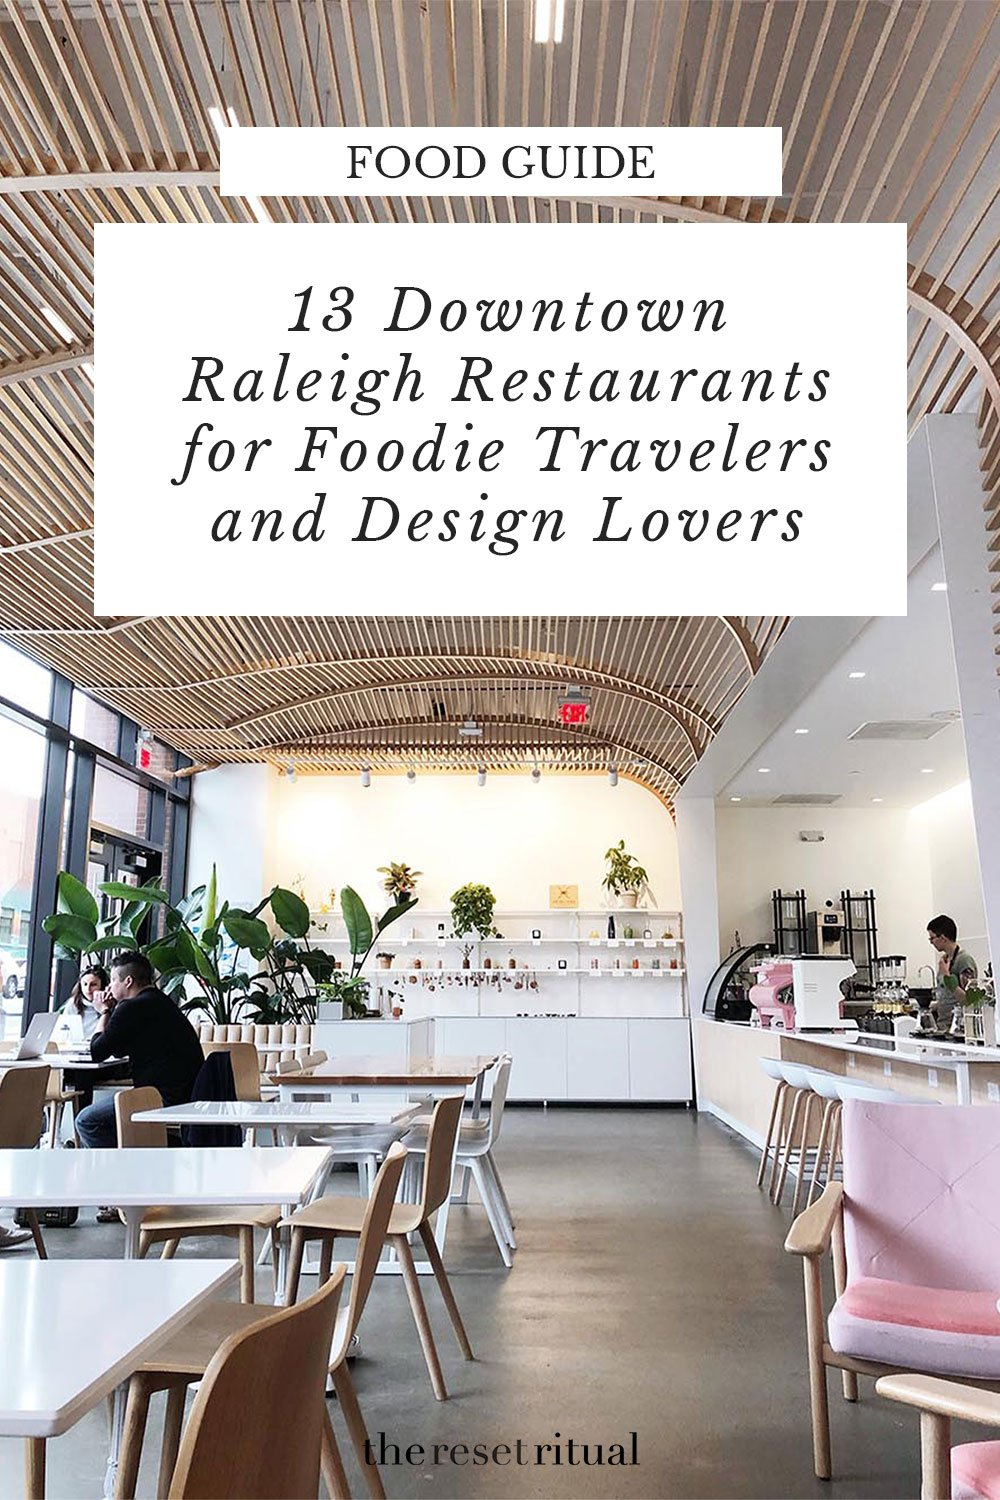 The downtown Raleigh restaurant scene is a foodie travel paradise. Sure, there's plenty of barbecue and comfort food, but these design-driven, locally-sourced restaurants boast a fusion of international flavors with their own local spin. #foodguide #raleigh